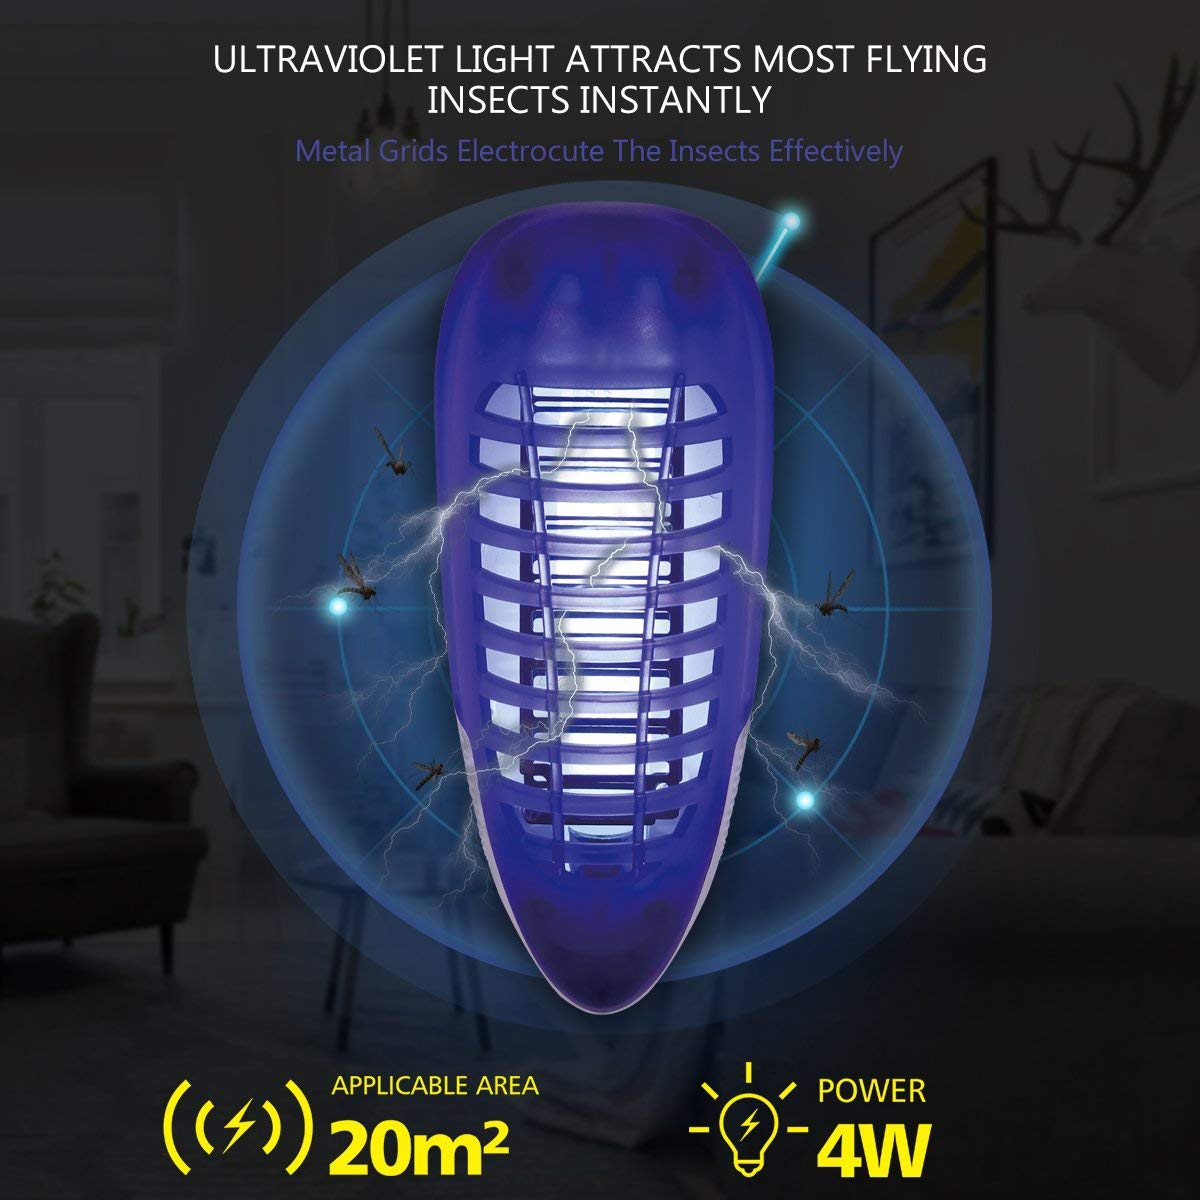 Mosquito Killer for Indoor Use,Fly Killer for Bedroom and Kitchen 4W Plug-in Portable Fly Trap YUNLIGHTS Bug Zapper Light